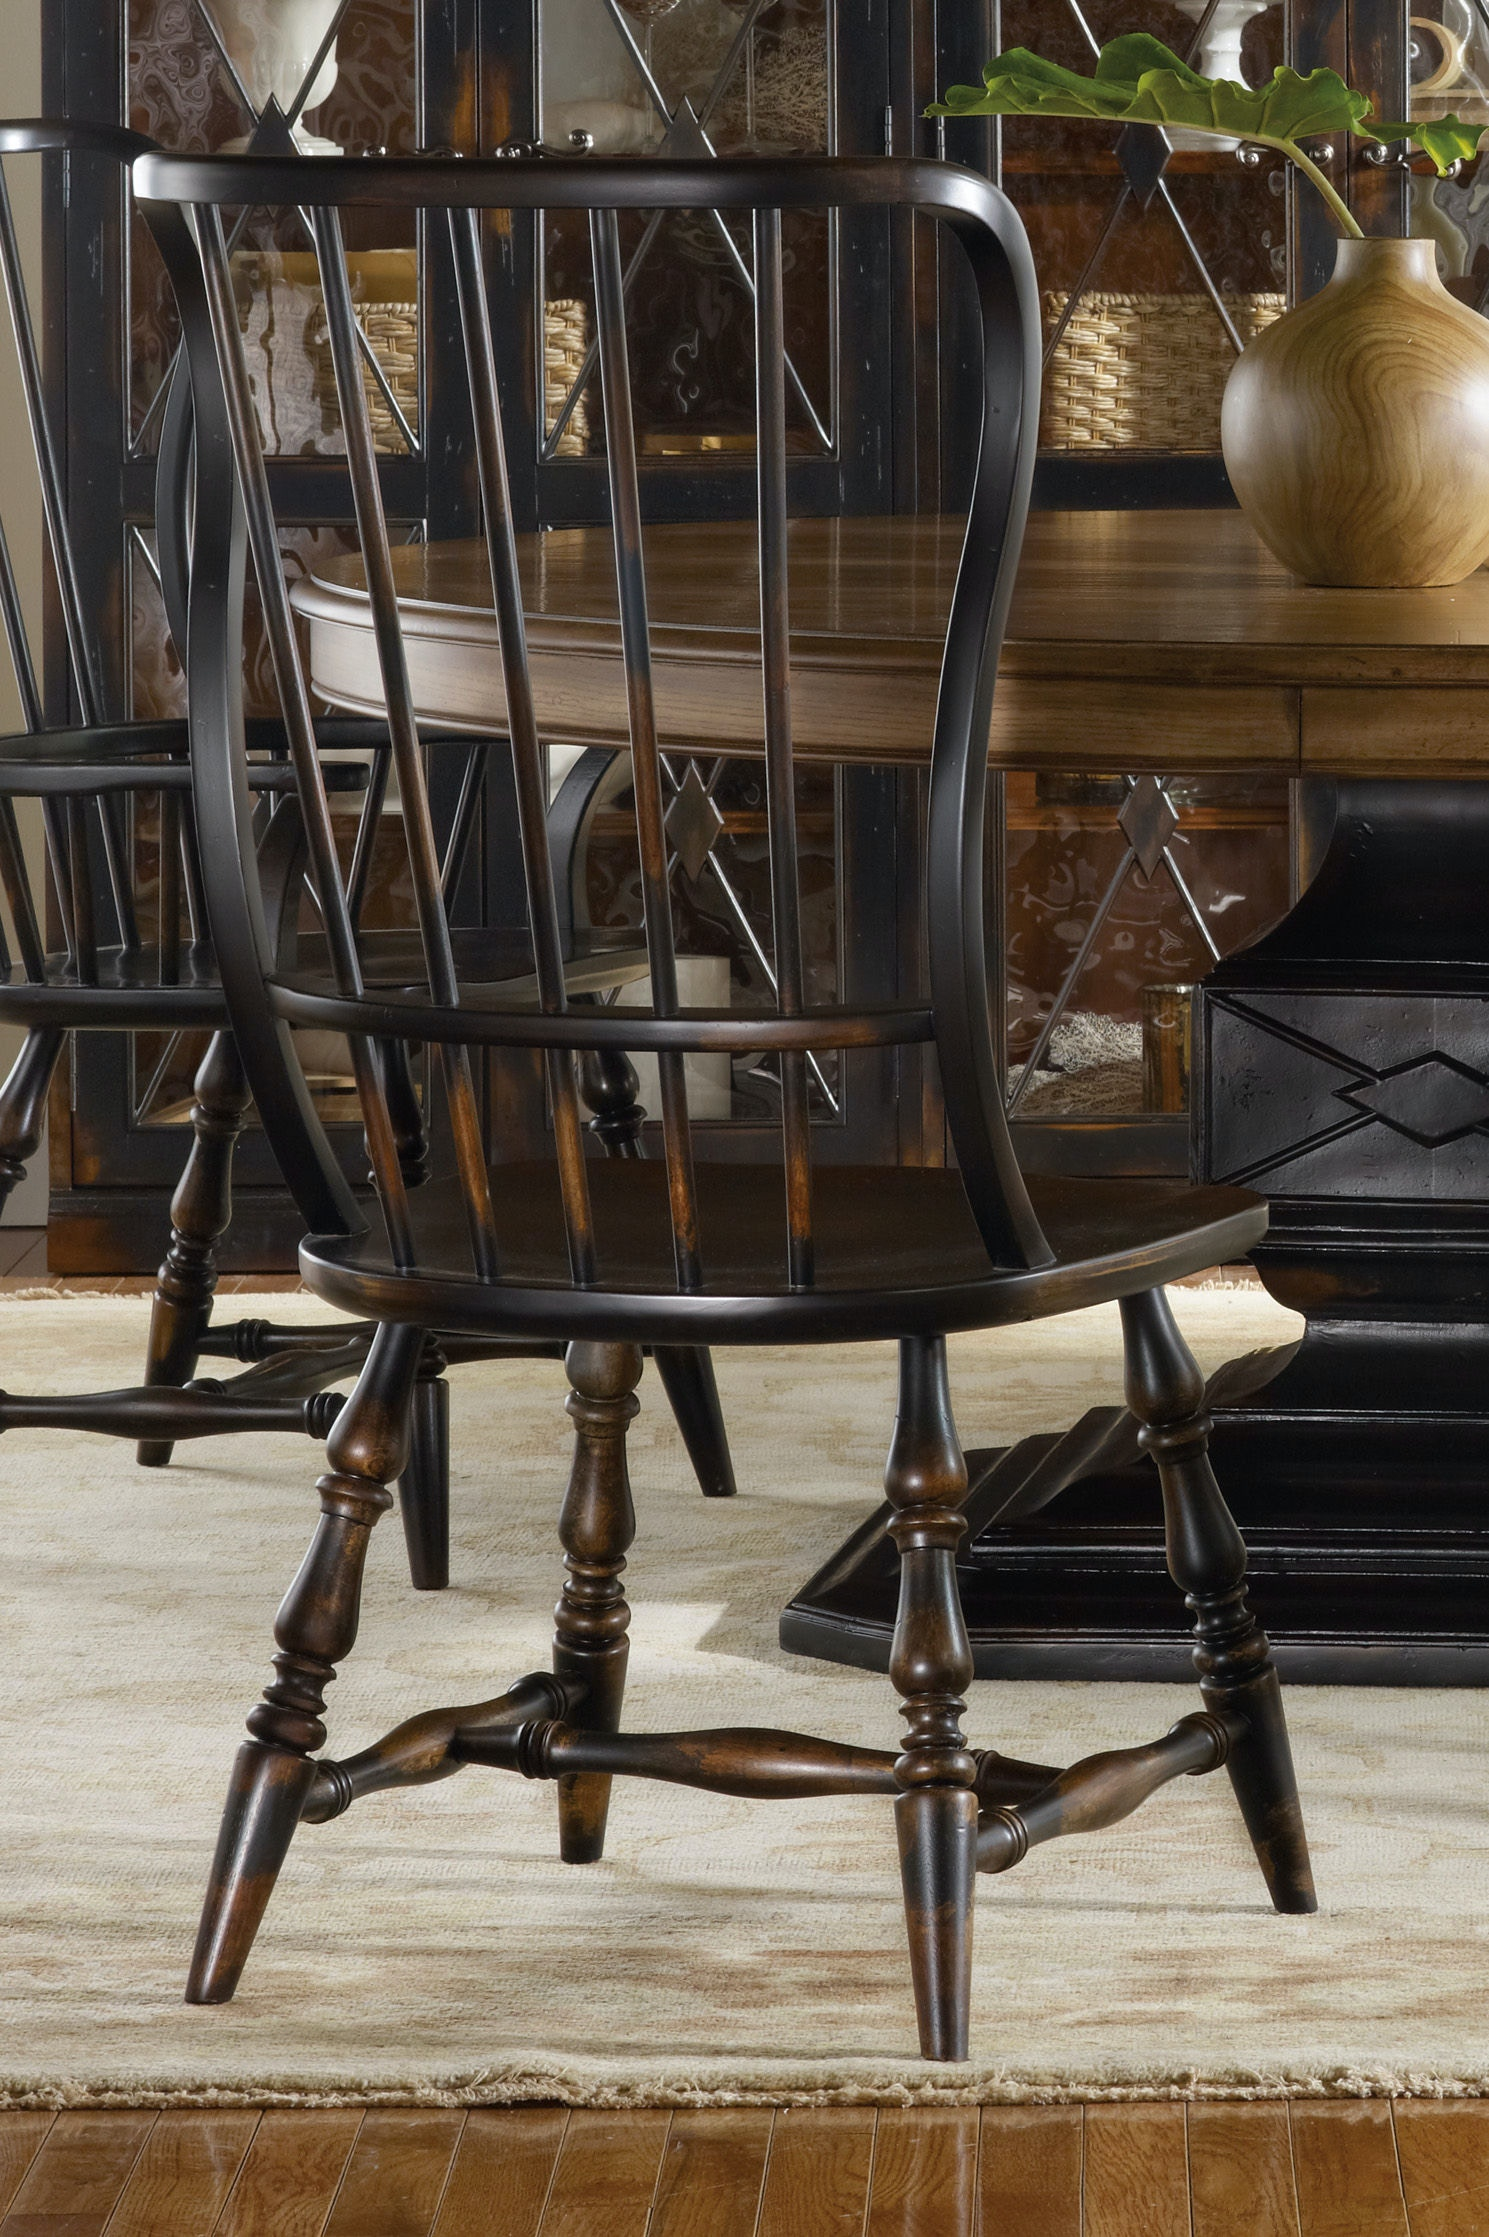 Ebony furniture